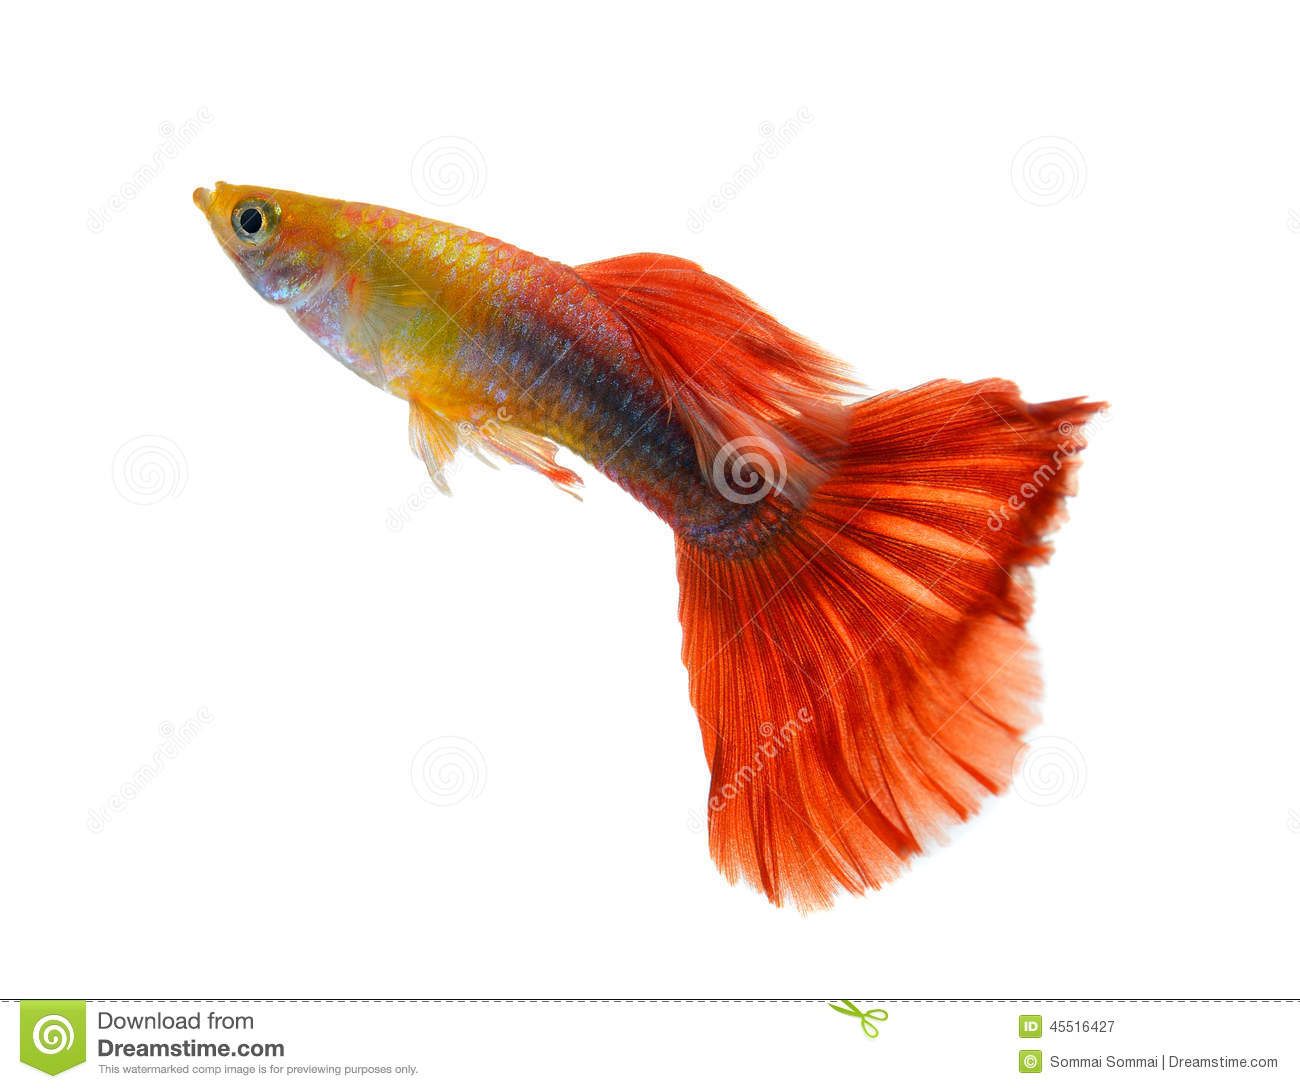 Guppy fish on white background